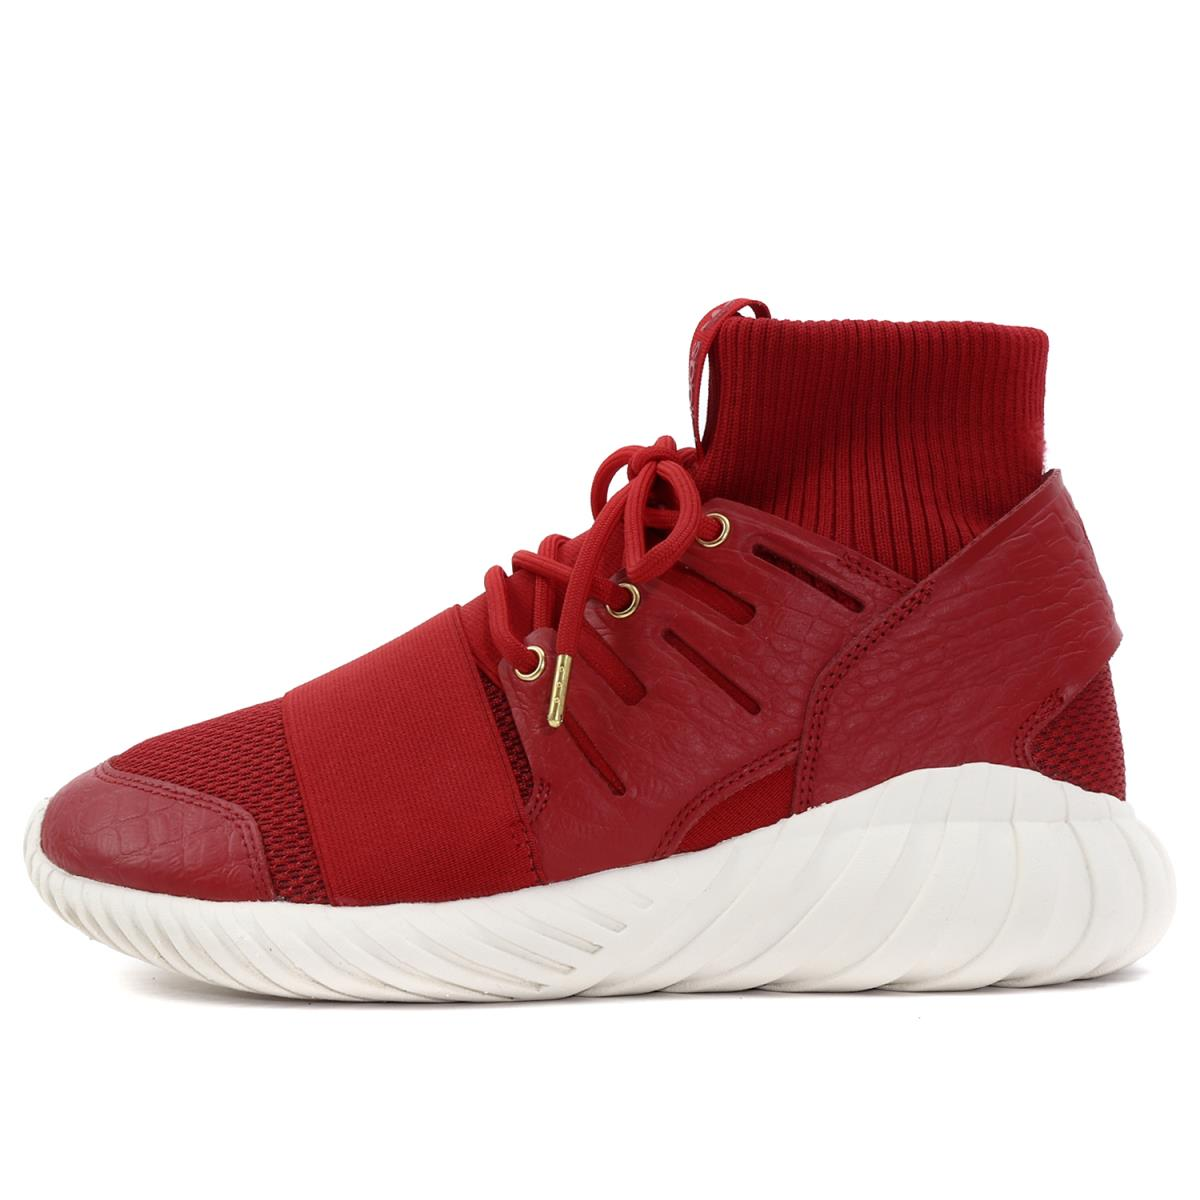 27406669fa93 adidas (Adidas) Japanese non-release TUBULAR DOOM CHINESE NEW YEAR (AQ2550)  red US8.5(26.5cm)